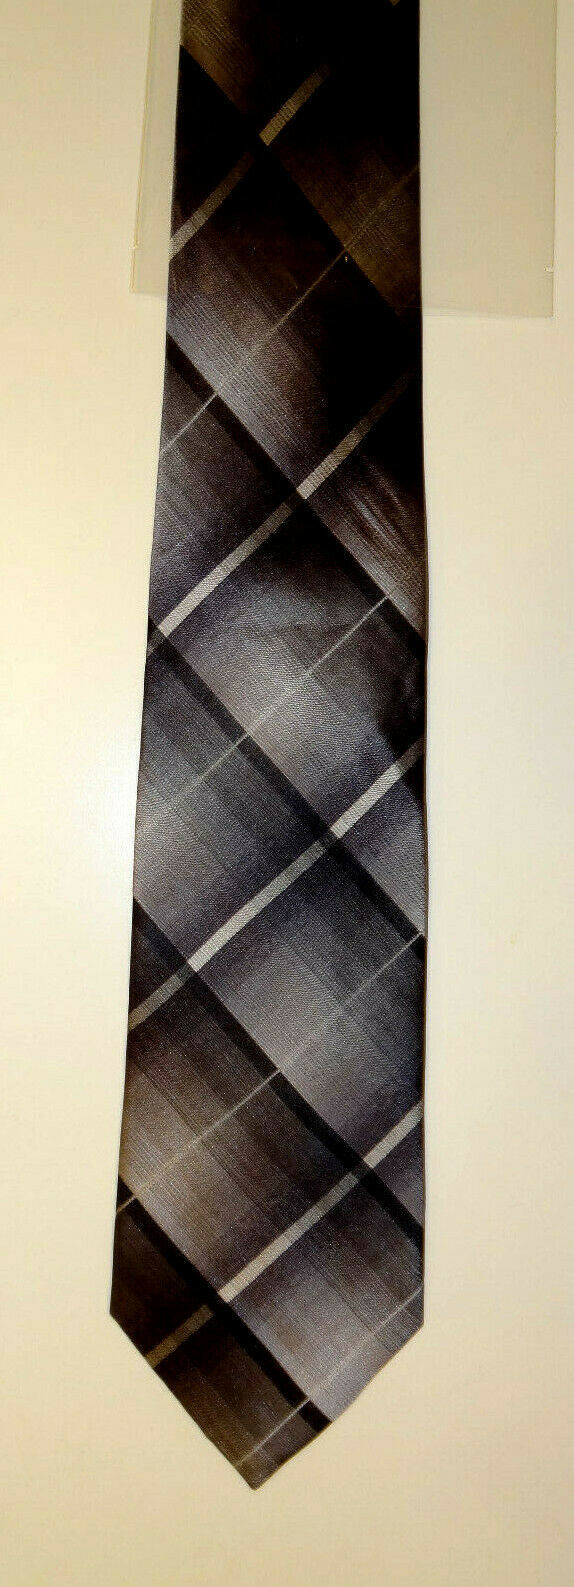 KENNETH COLE REACTION GRAY/BLACK SILK MEN'S NECK TIE 121148